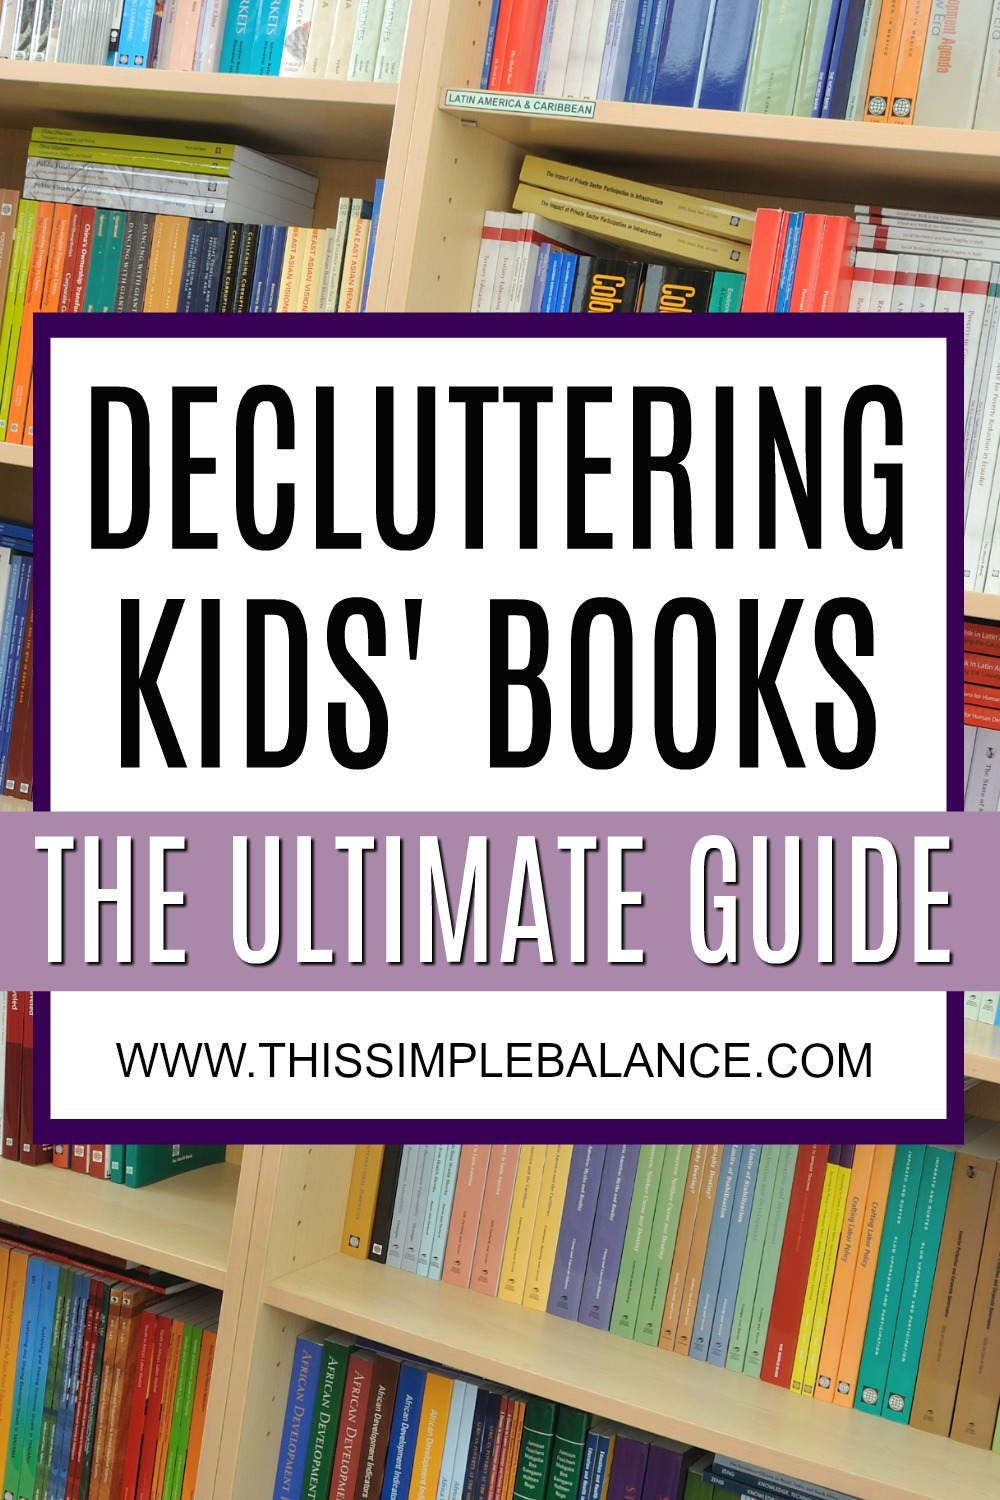 Declutter Children's Books: The questions you need to decide what to keep and what to give away, and why you can own fewer books and still raise avid readers.